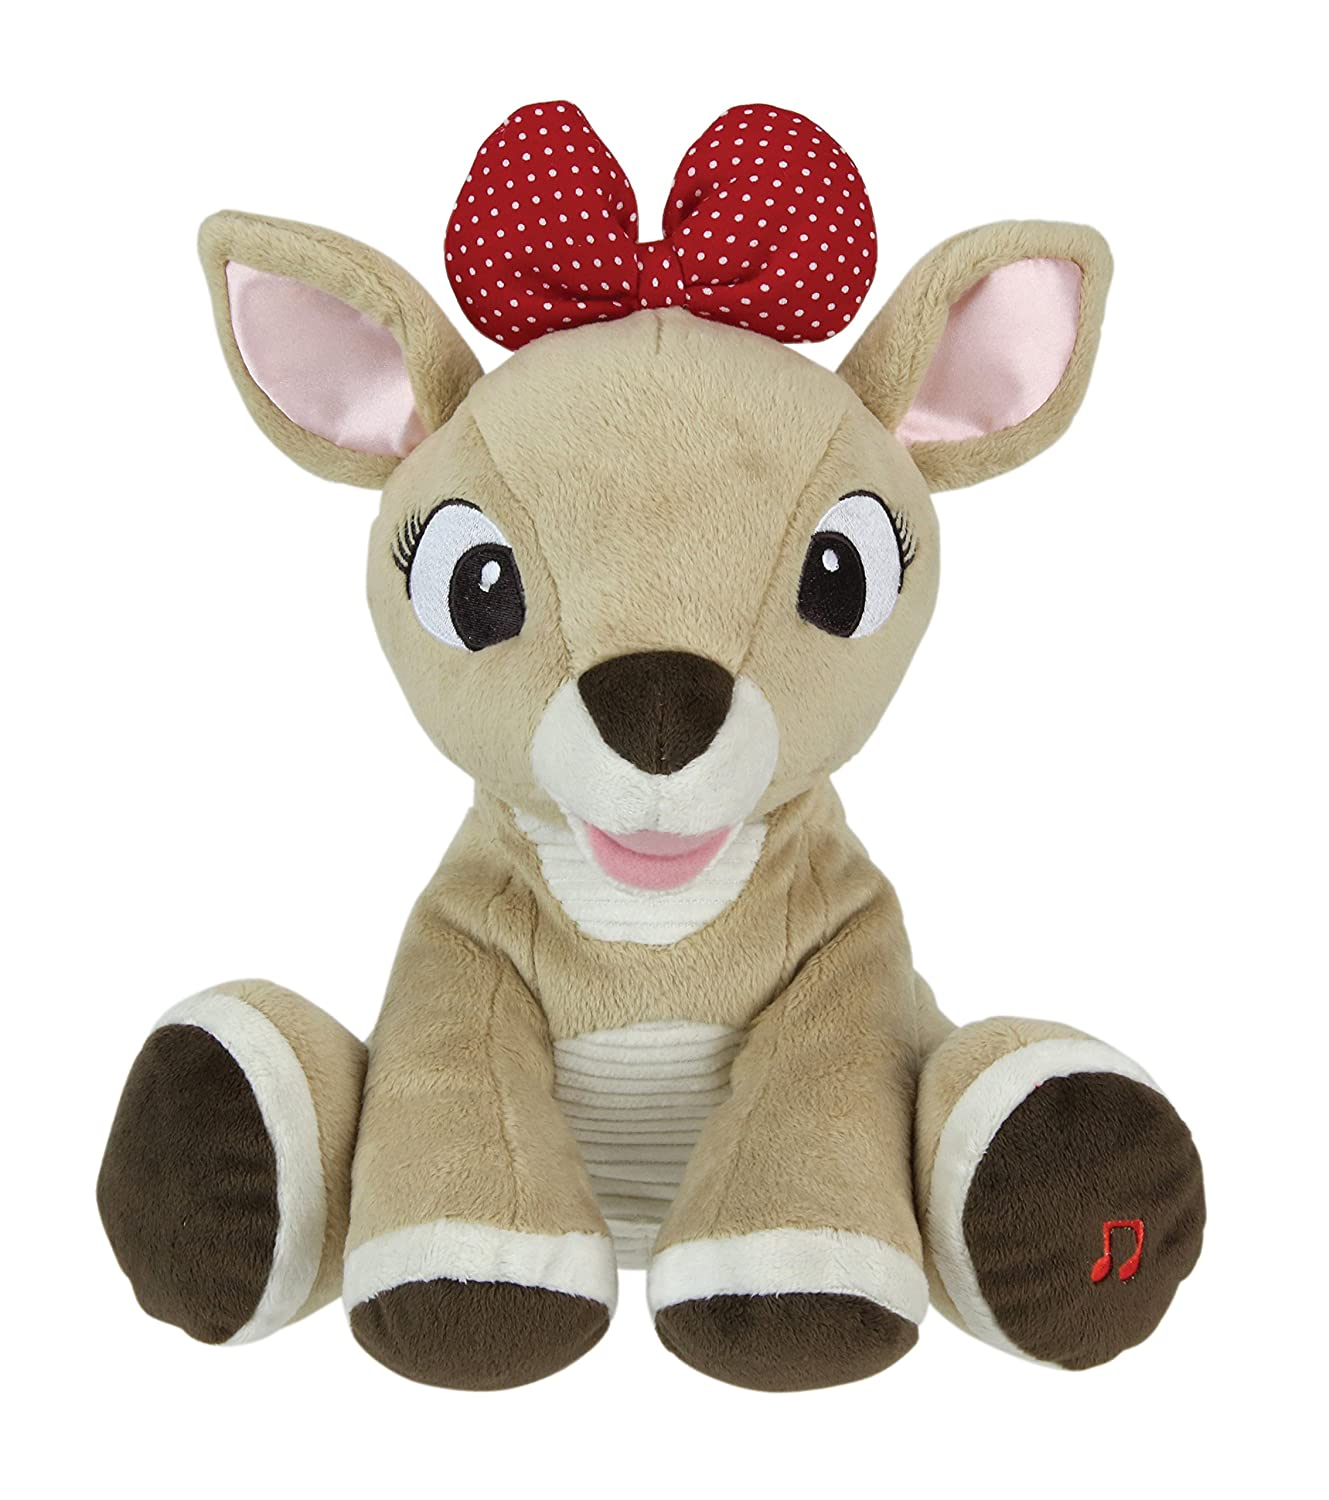 Kids Preferred Clarice Plush with Music Lights